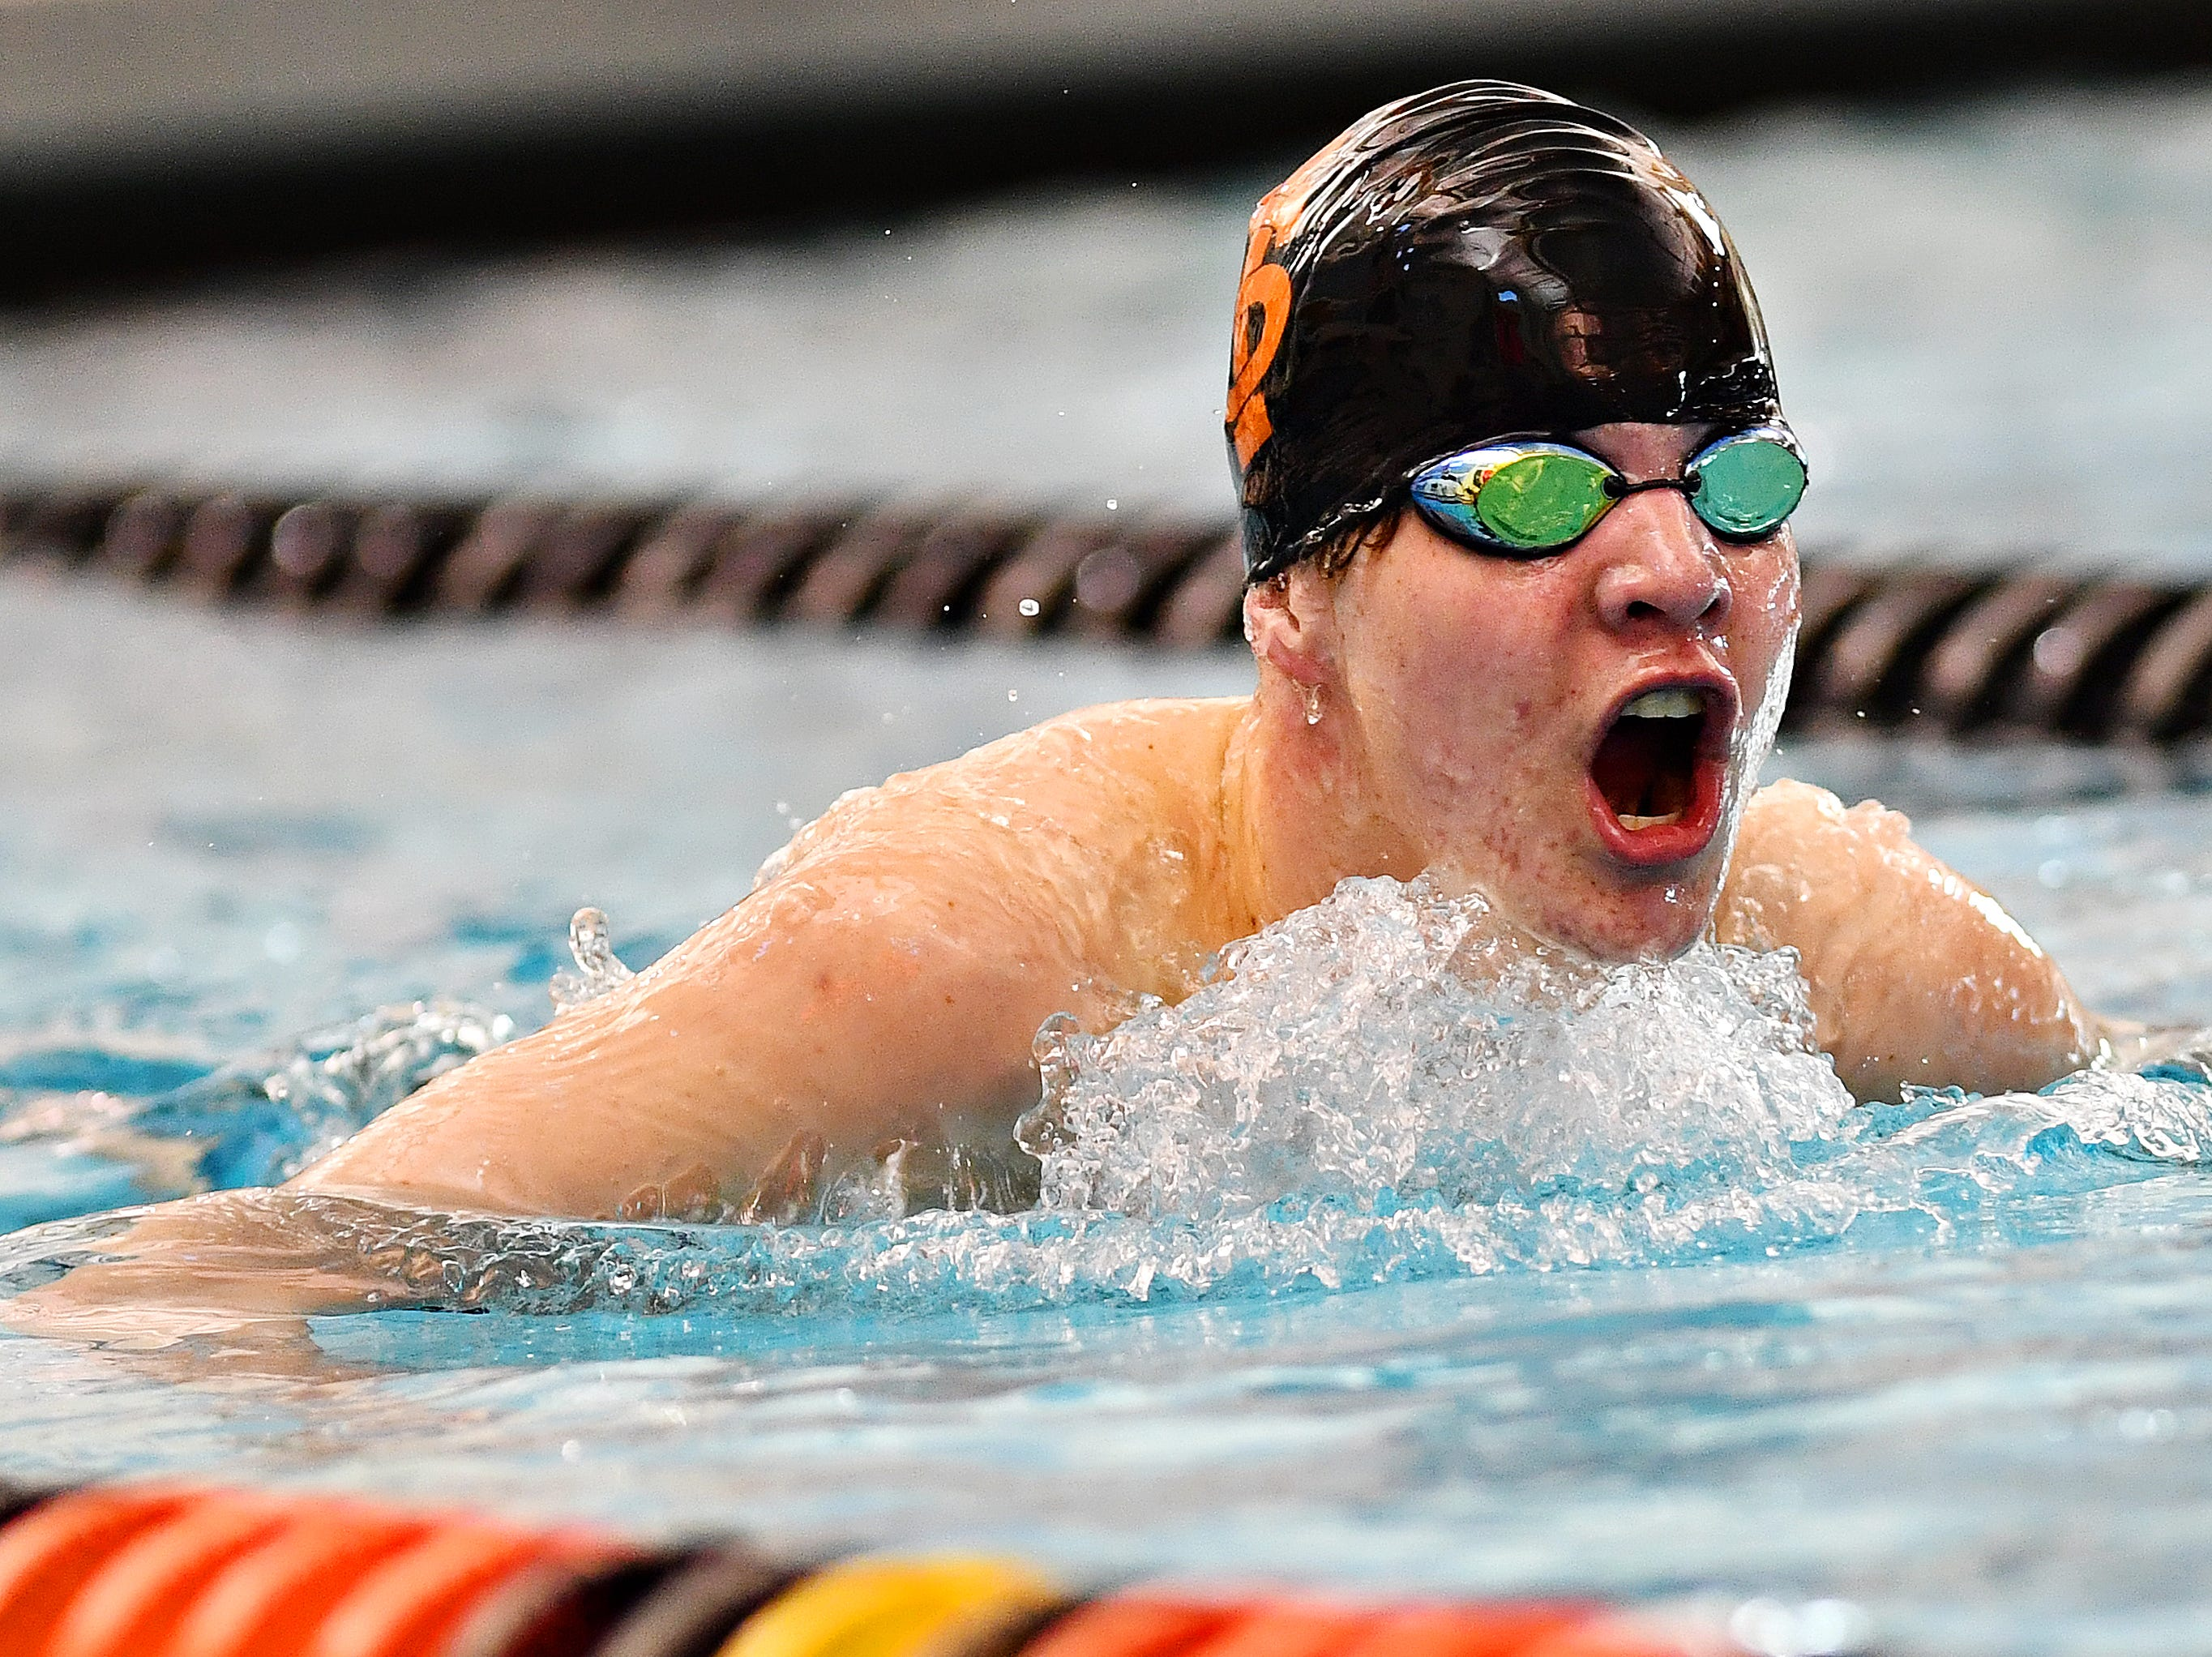 York Suburban's Tyler Herink competes in the 100 Yard Breaststroke event during the York-Adams League Swimming Championship at Central York High School in Springettsbury Township, Saturday, Feb. 9, 2019. Dawn J. Sagert photo